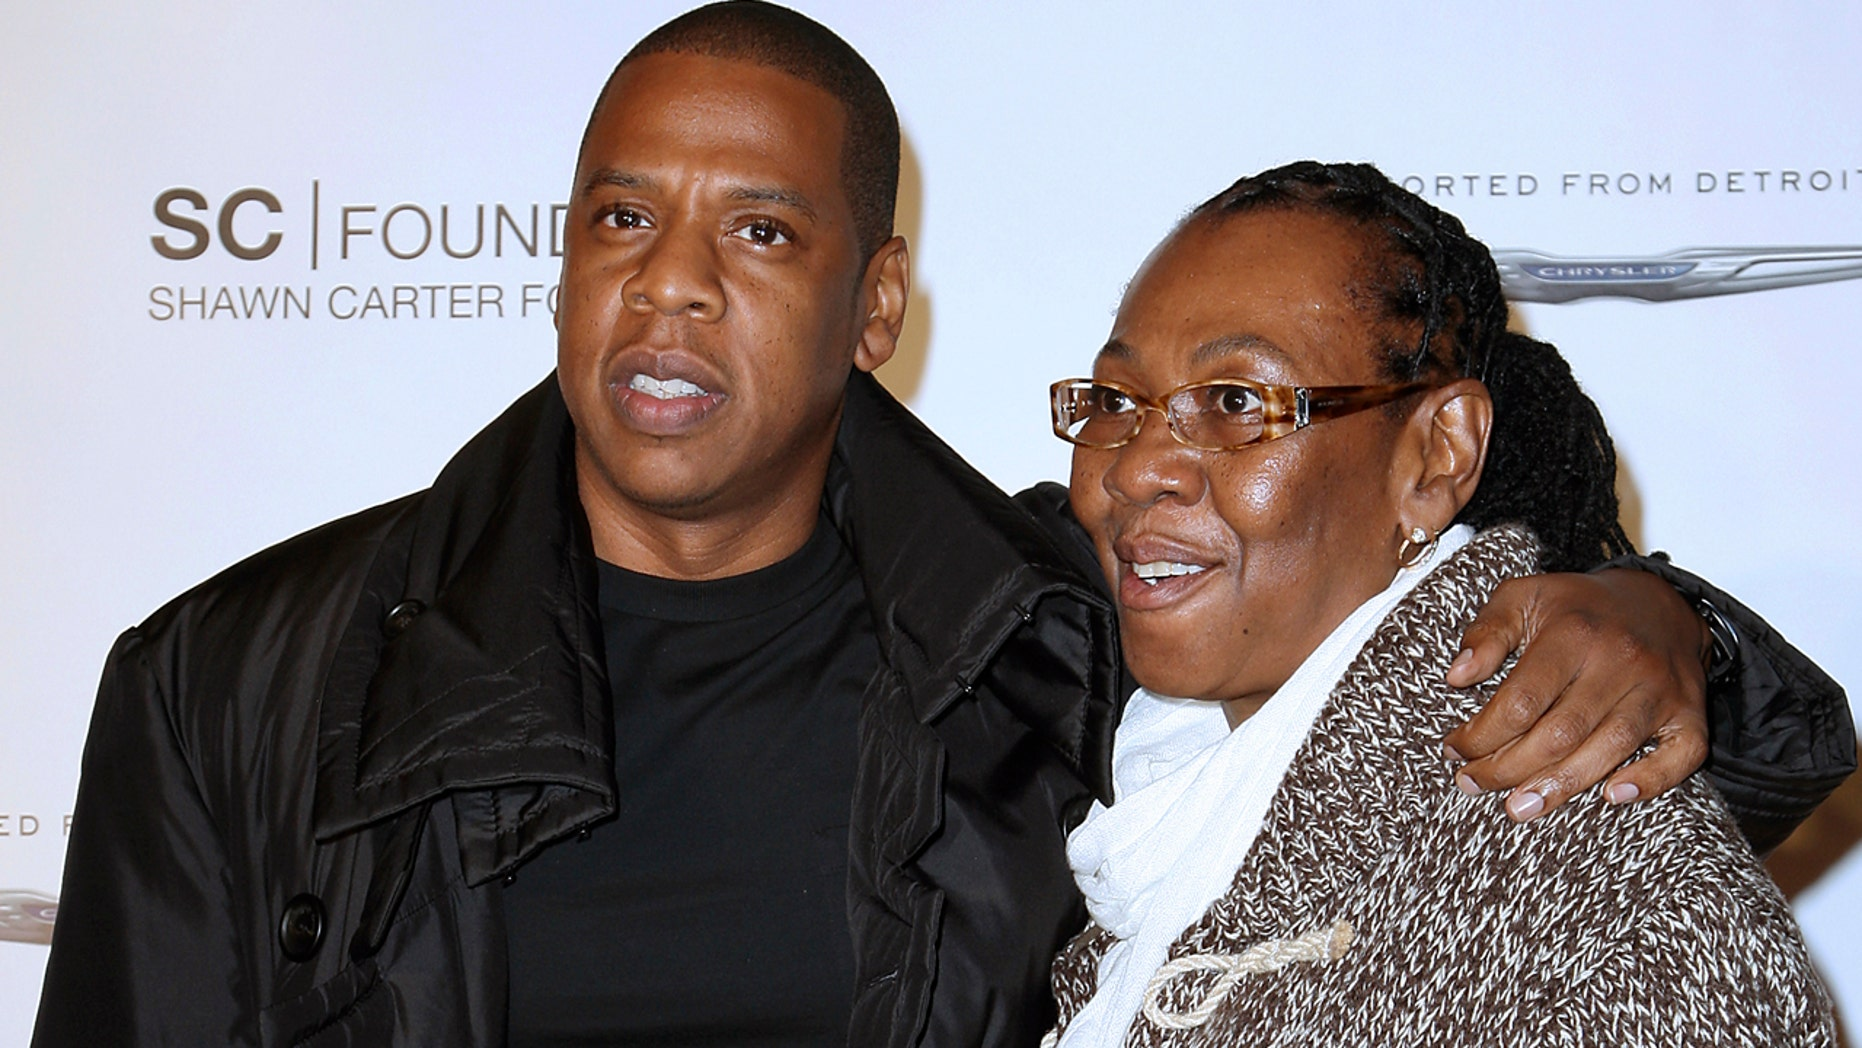 "FILE - In this Sept. 29, 2011 file photo released by Starpix, Shawn ""Jay Z"" Carter poses with his mother Gloria Carter at a fundraising event to support his college scholarship program in New York. The rapper speaks about his mother on the the April 6 episode of ""My Next Guest Needs No Introduction with David Letterman"" on Netflix. He says he cried when his mother came out to him and that he was happy that his mother was free. (AP Photo/Starpix, Kristina Bumphrey, File)"